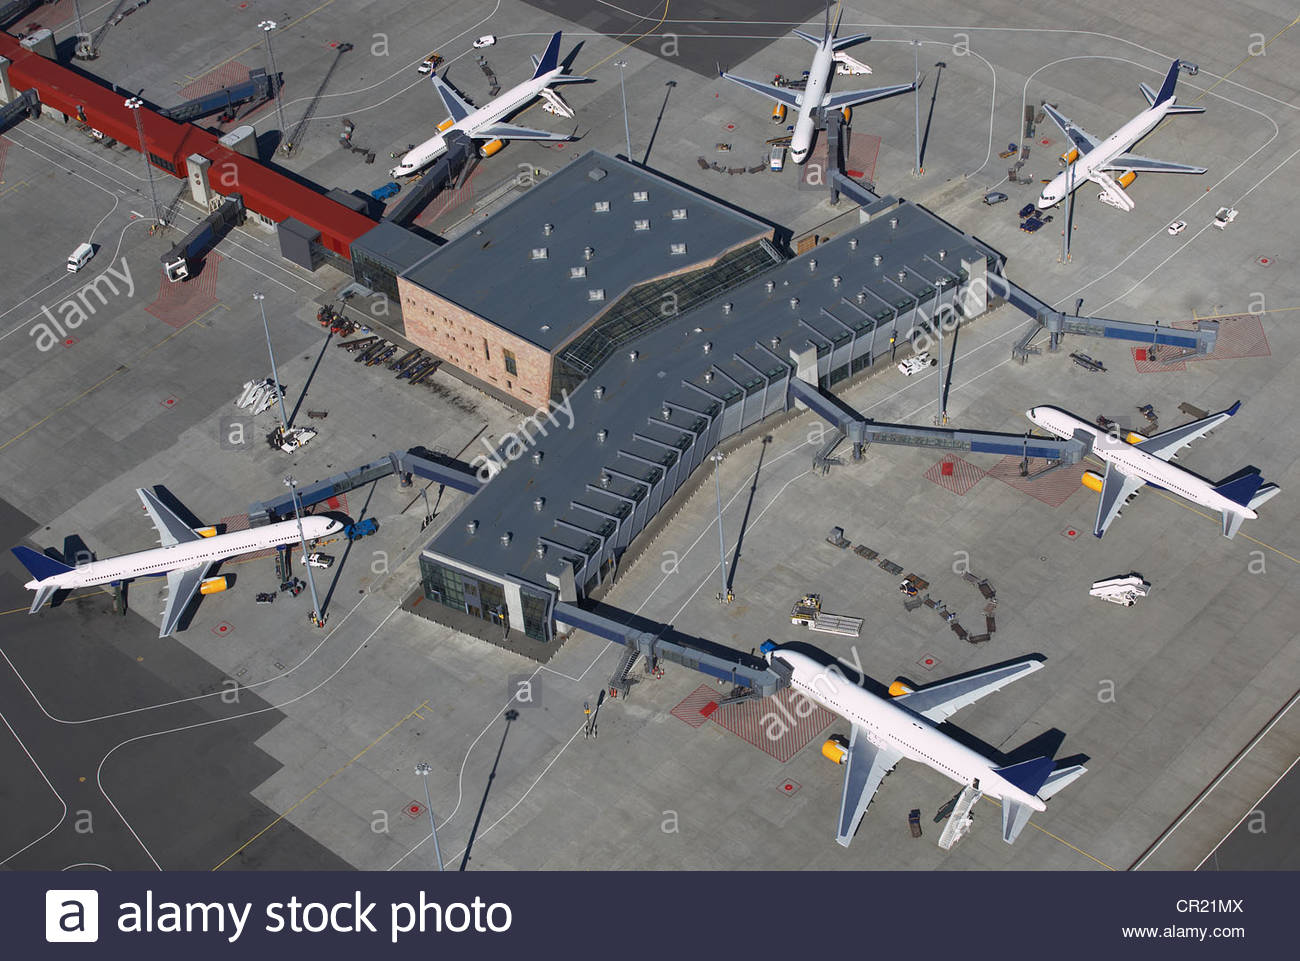 Aerial view of planes at airport - Stock Image